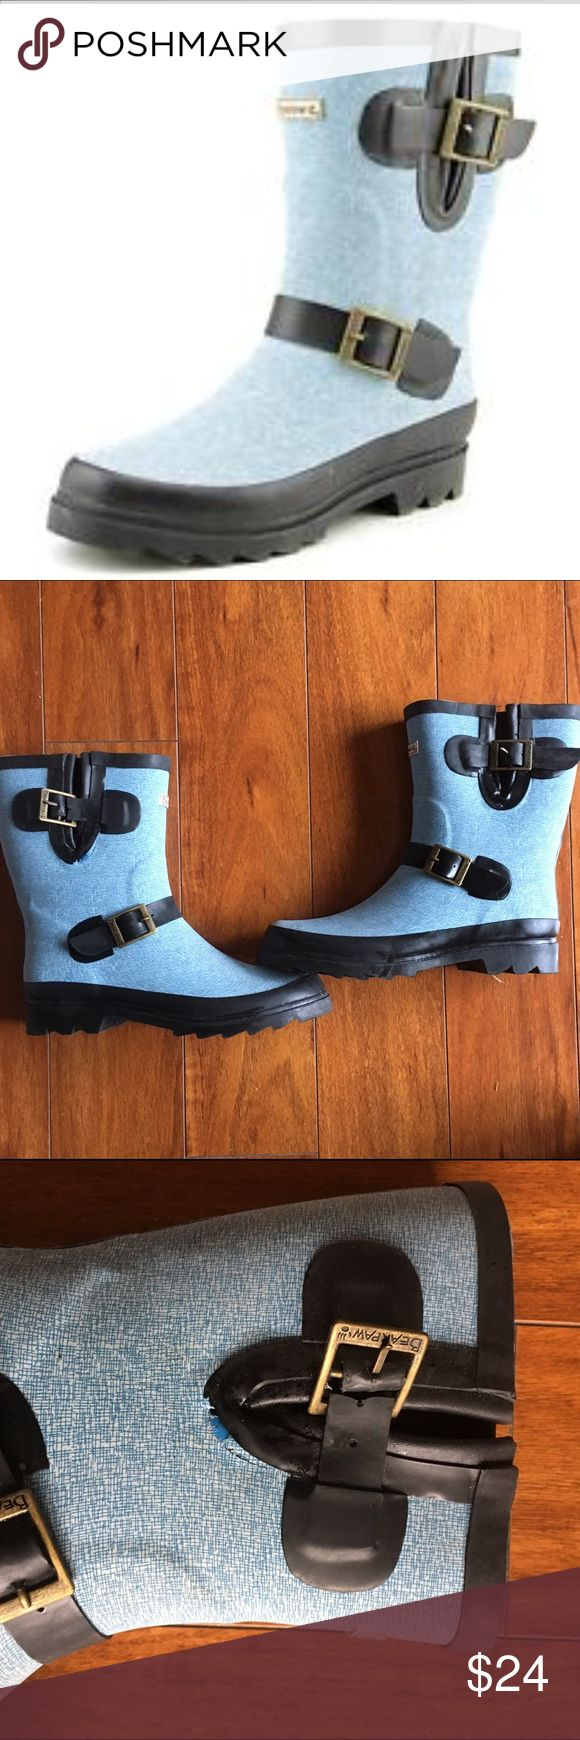 Bearpaw rain boots Worn once for an hour. Bear Paw rain boots Sz 9. Medium light blue with black trim. Great traction on the bottom. Purchased from Nordstrom Rack. Flaws to note-see 3rd pic-buckle strap is split. You don't notice this when wearing. There's also a manufactures defect under the black portion. Again not really noticeable. These are so cute but I never reach for them. BearPaw Shoes Winter & Rain Boots